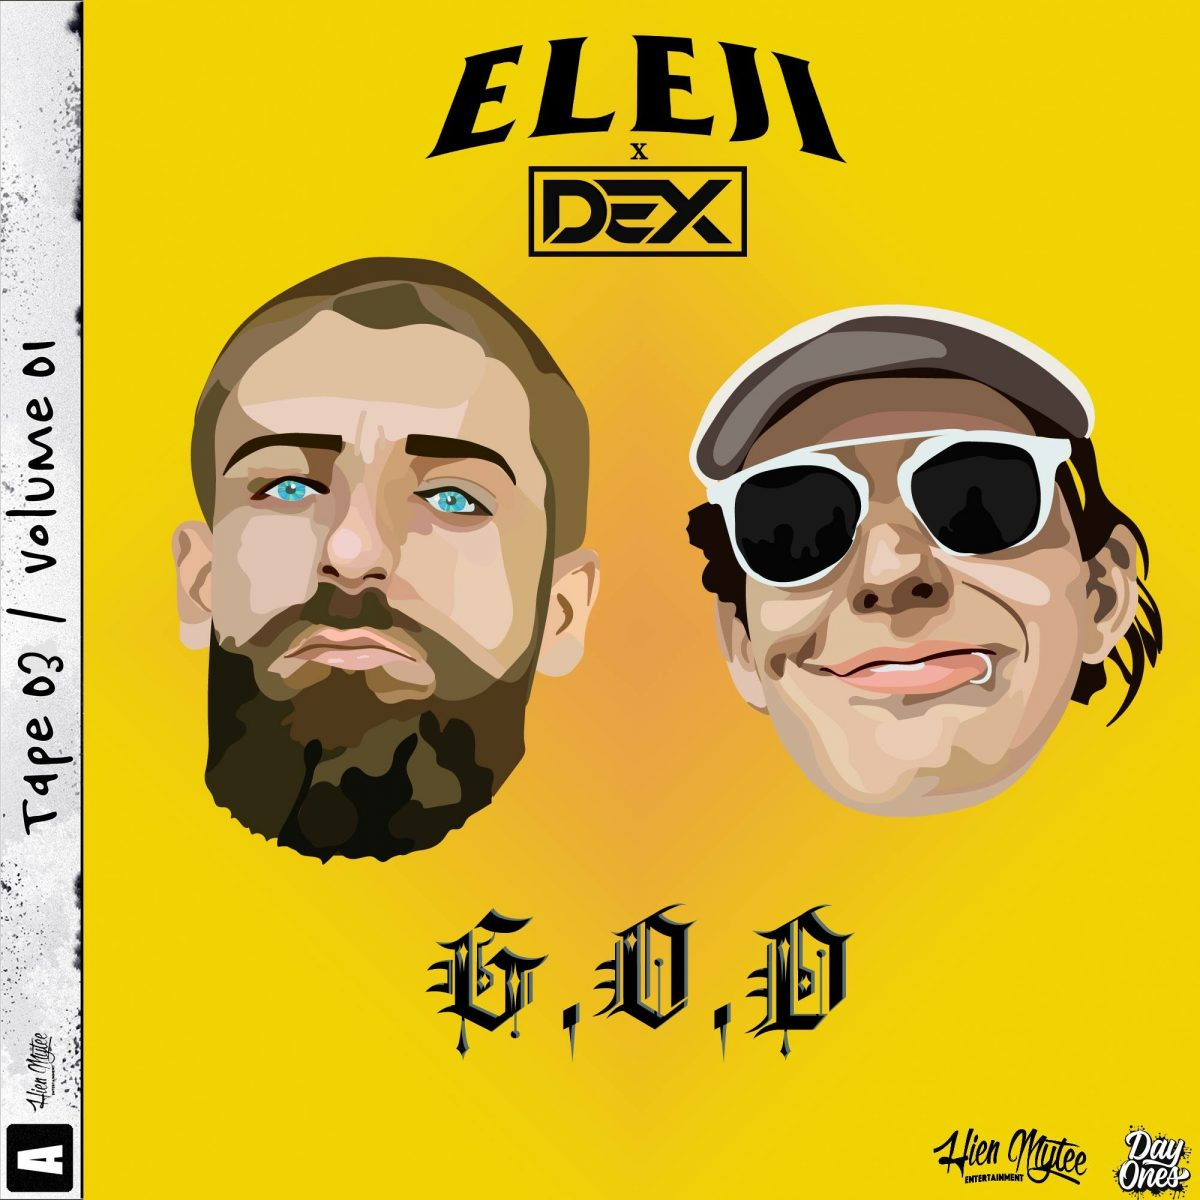 """ELEJI - """"G.O.D"""" FT. DEX 